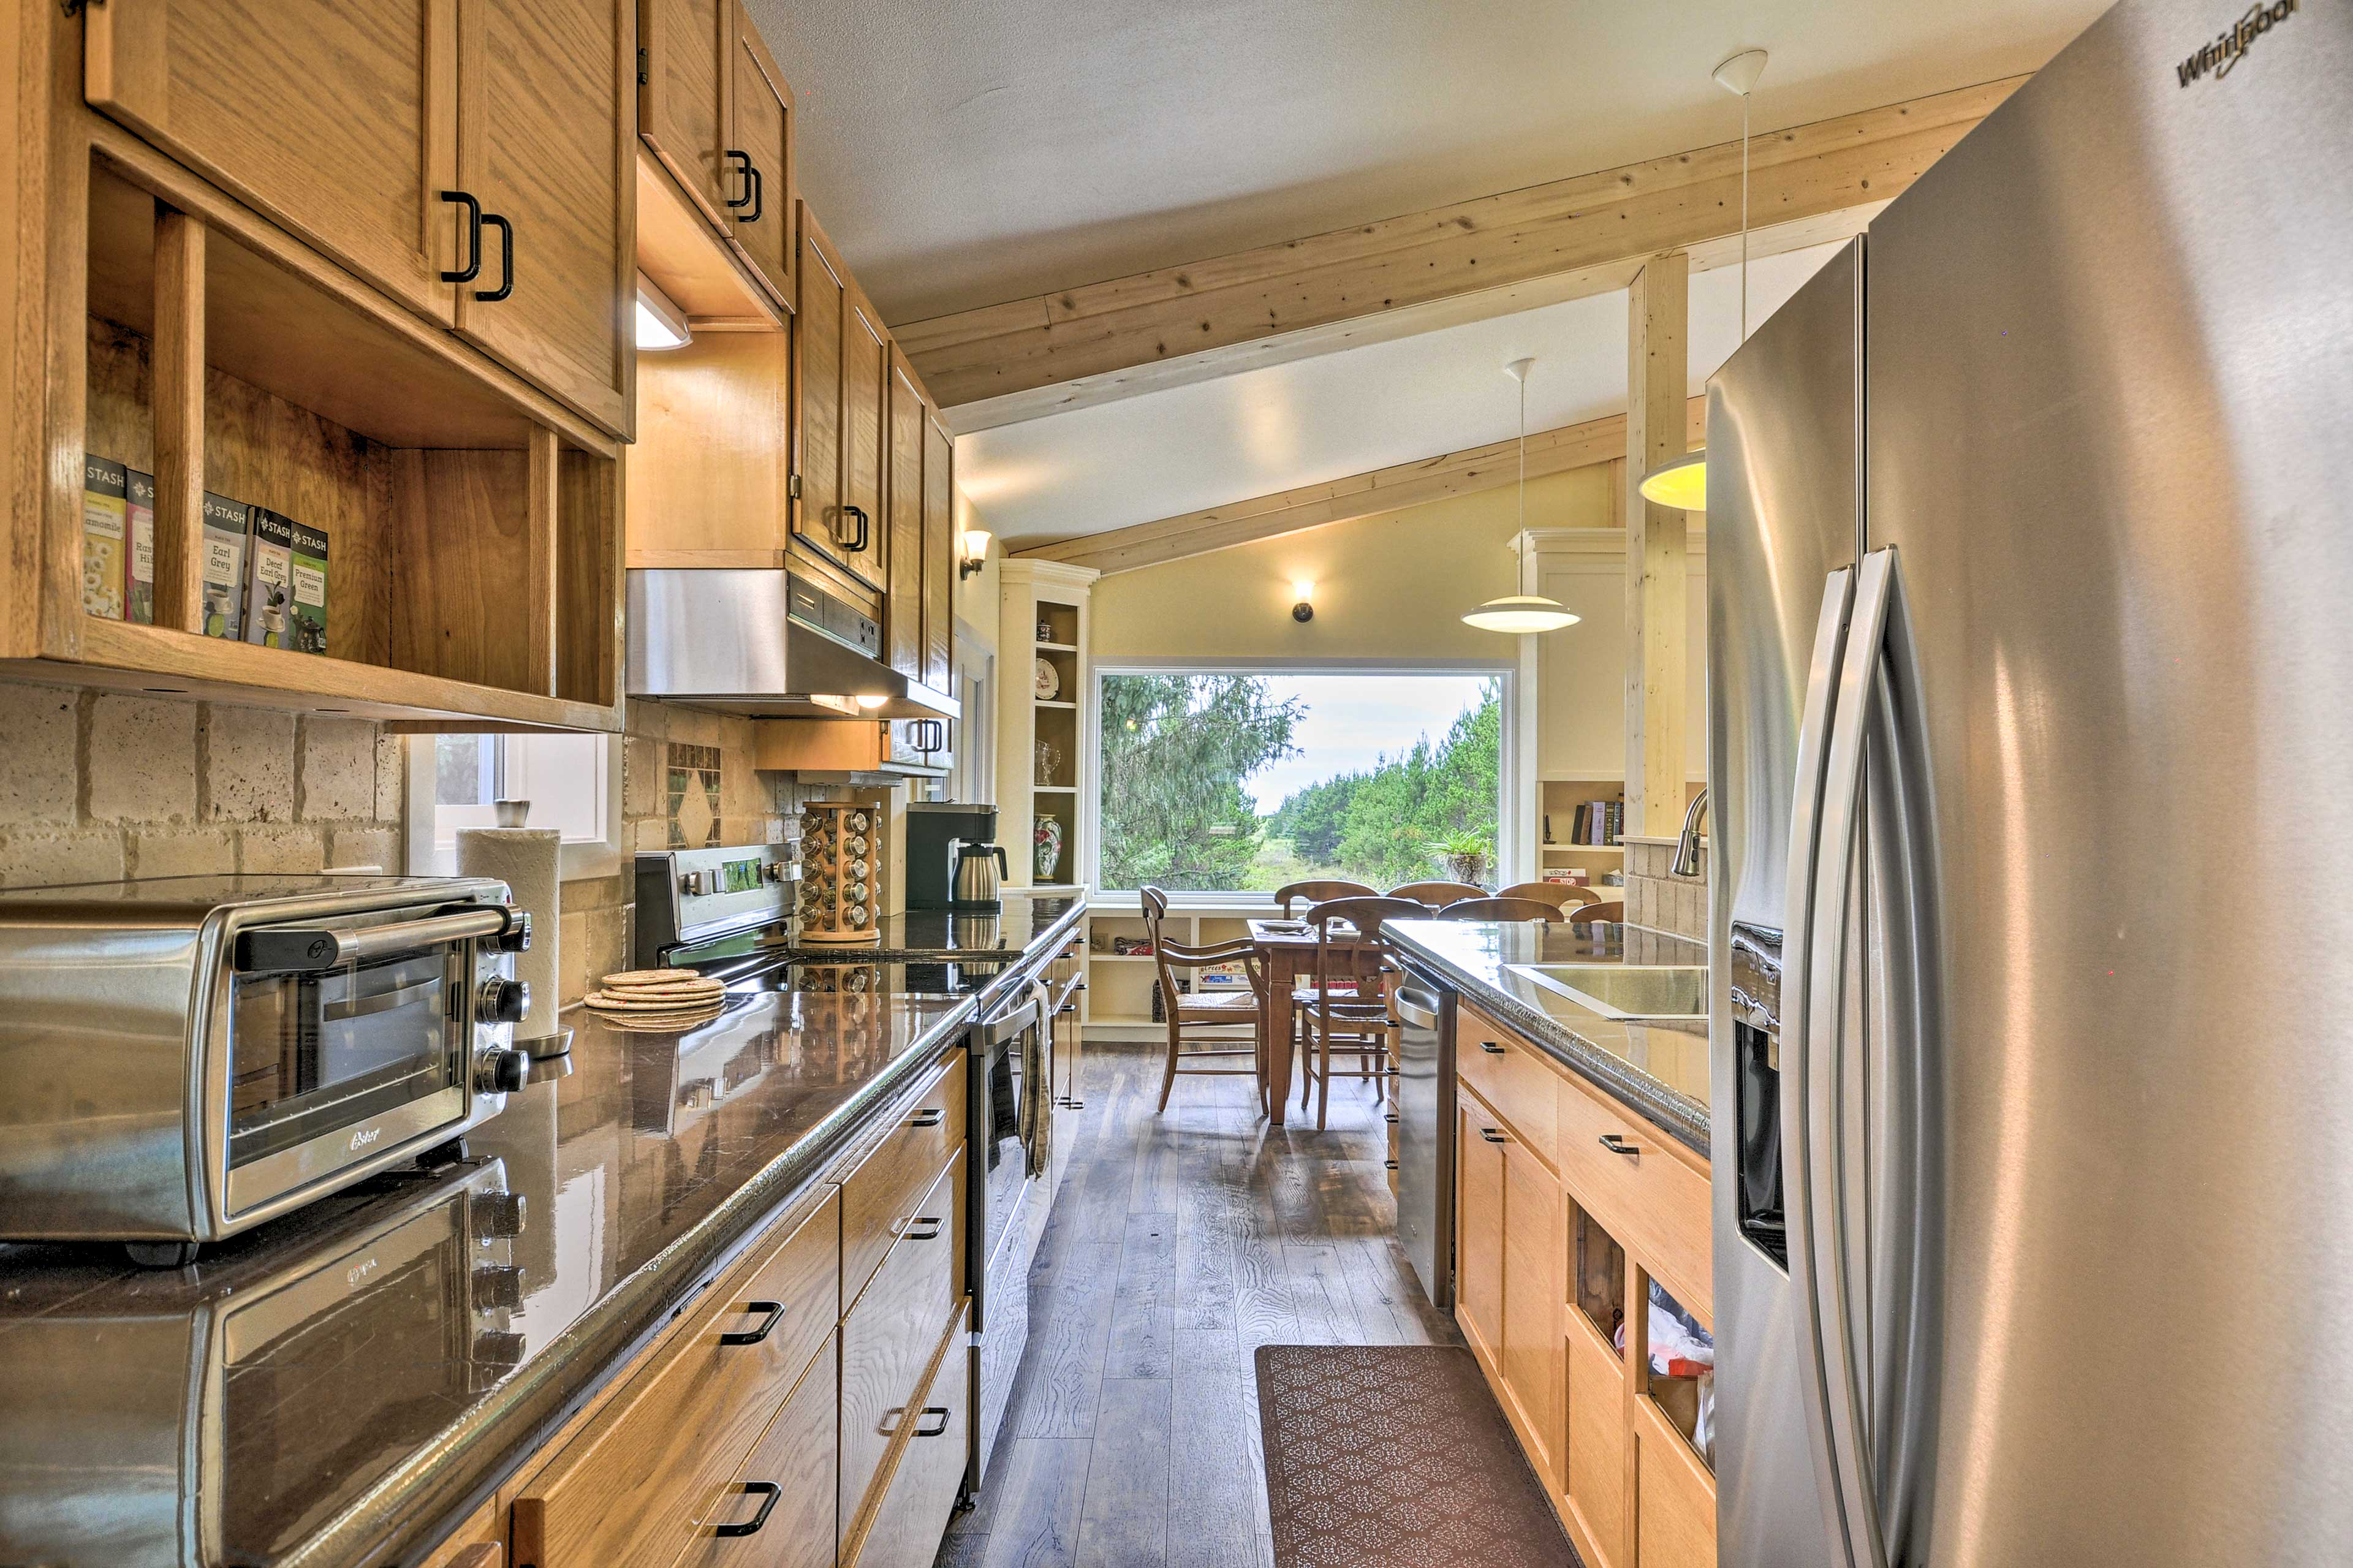 Fully Equipped Kitchen 1 | Spices | Drip Coffee Maker | Top Appliances